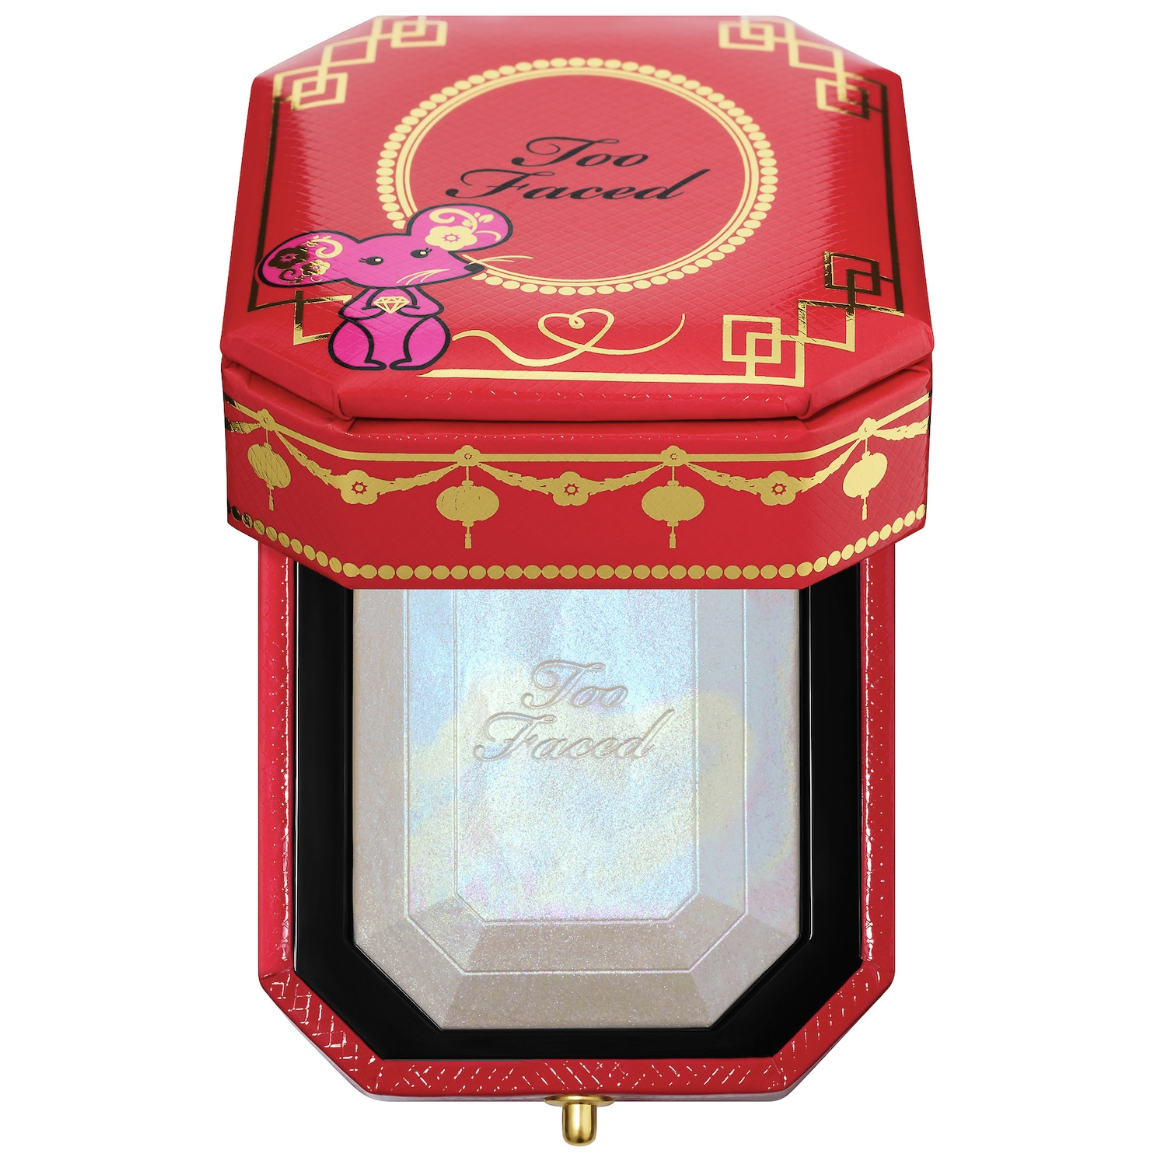 Too Faced Lunar New Year Diamond Light Highlighter